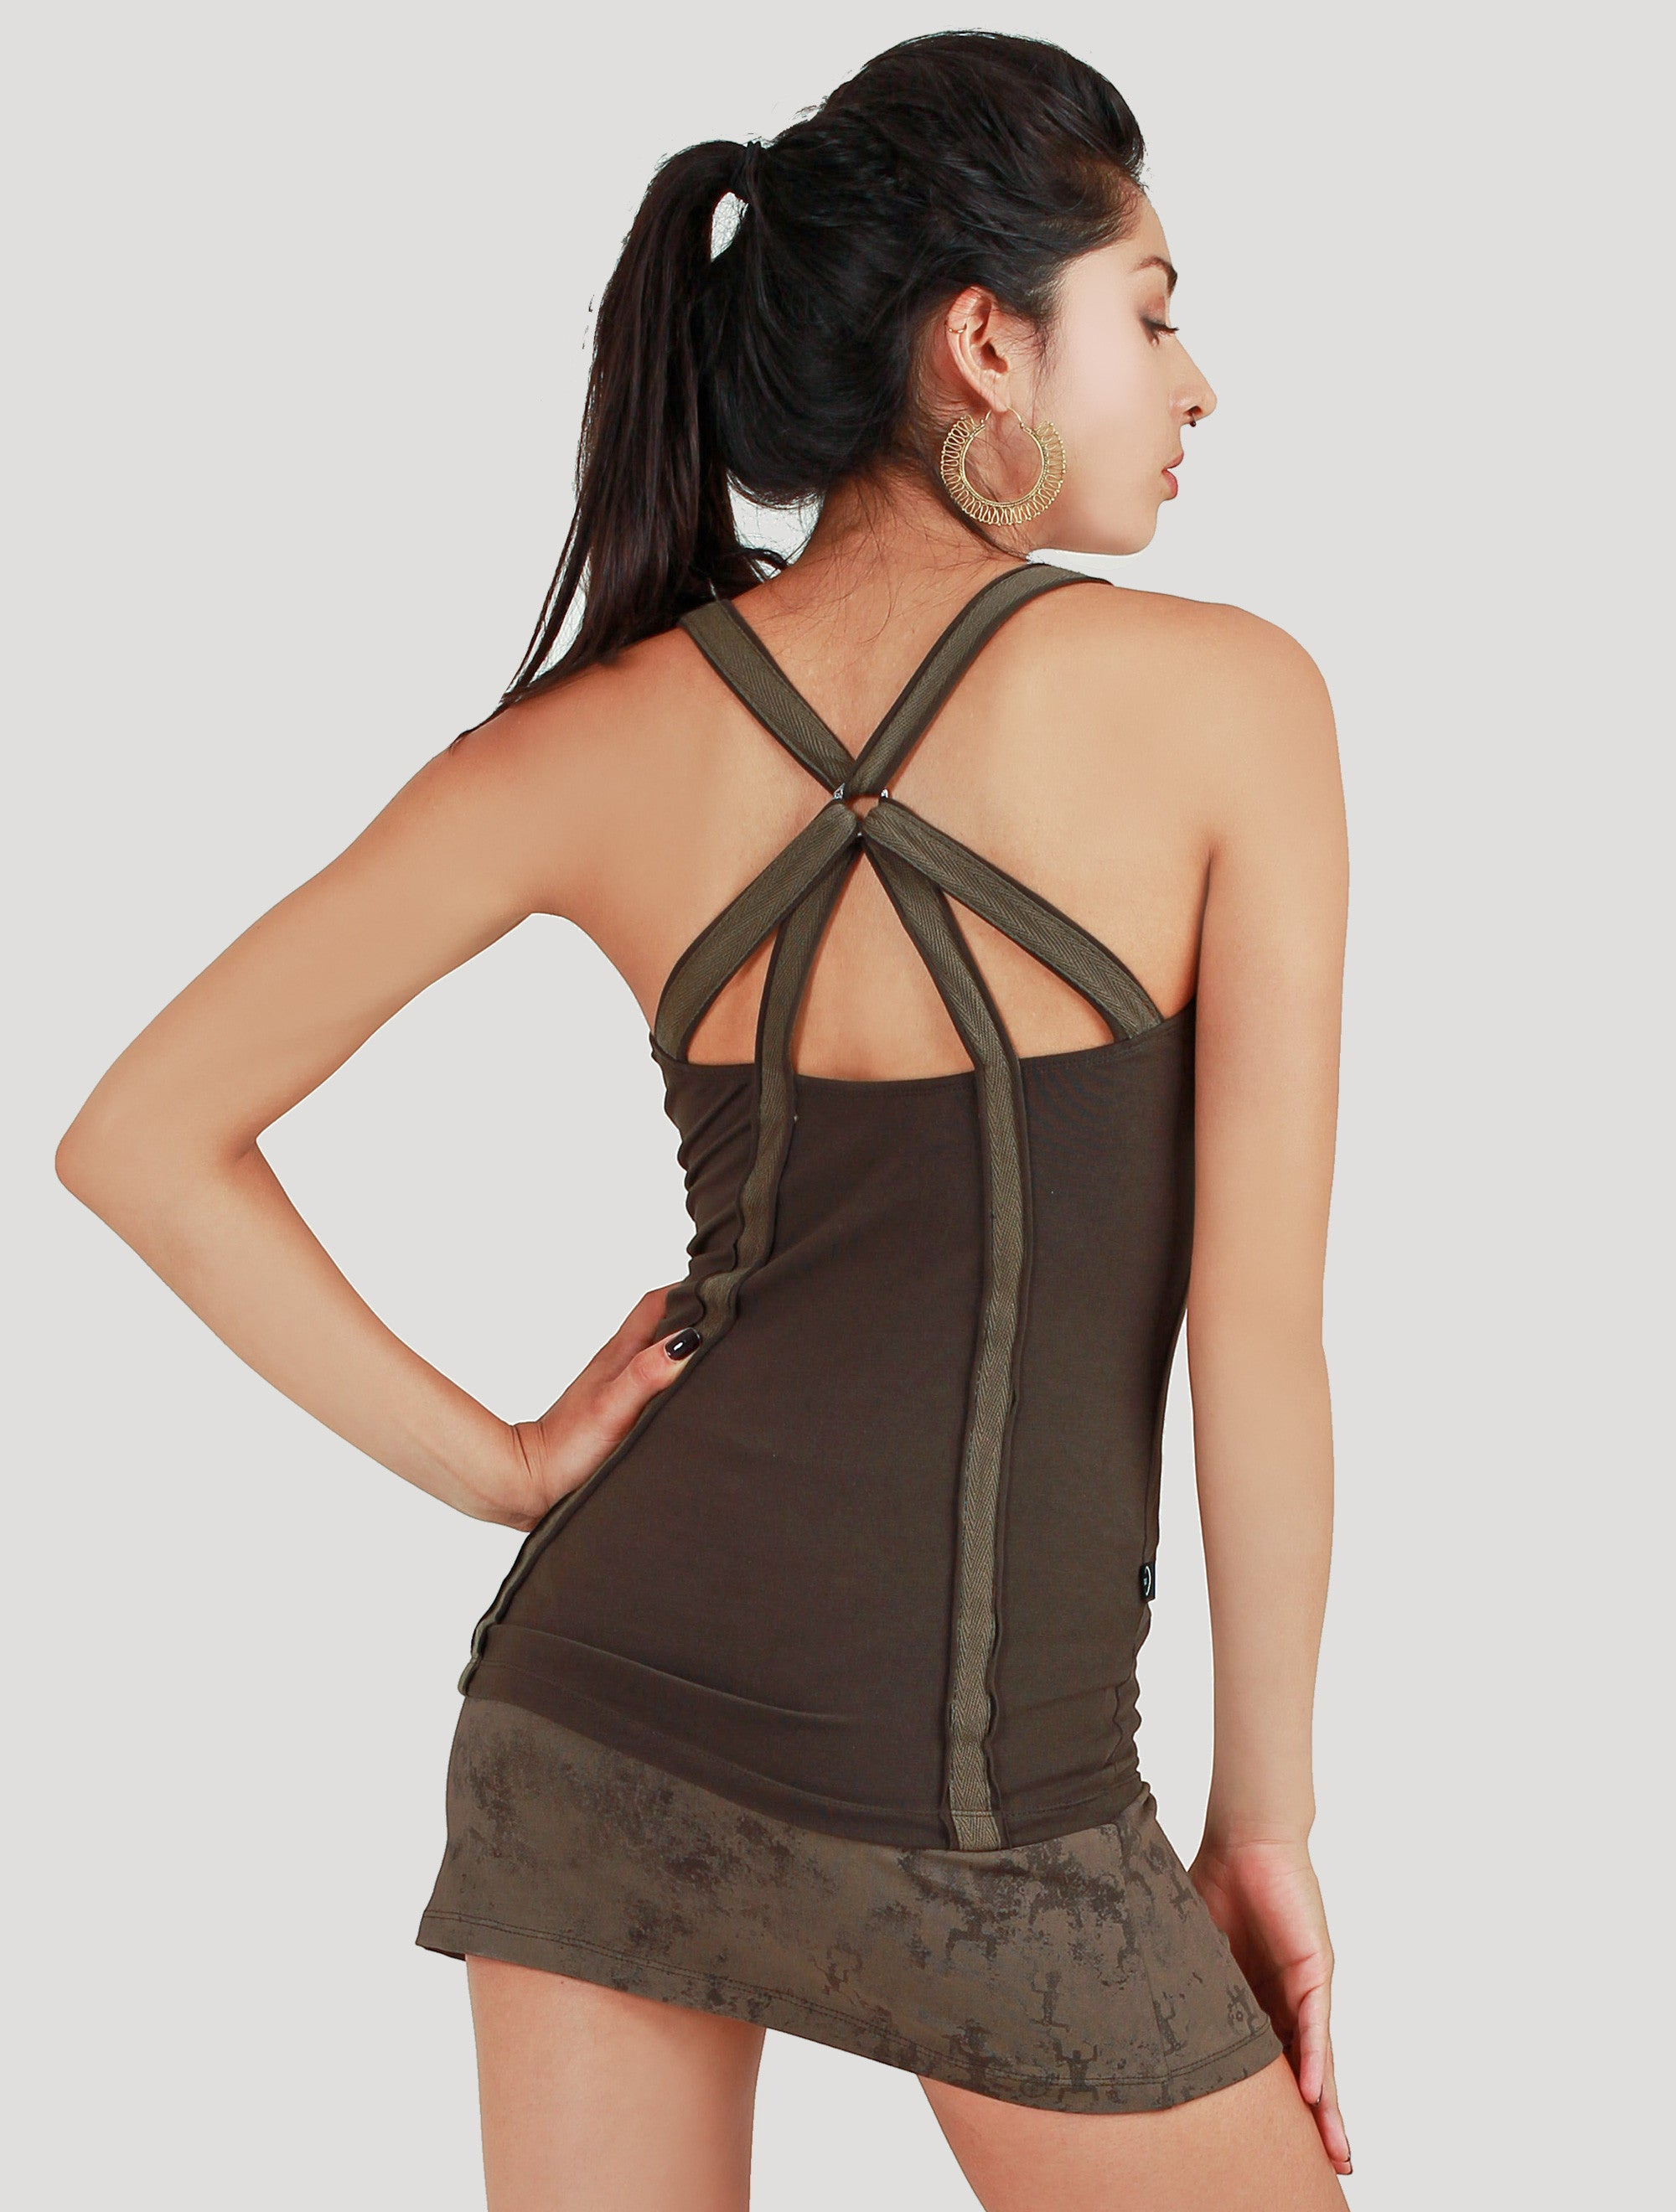 Strap Singlet Sleeveless Top - Psylo Fashion